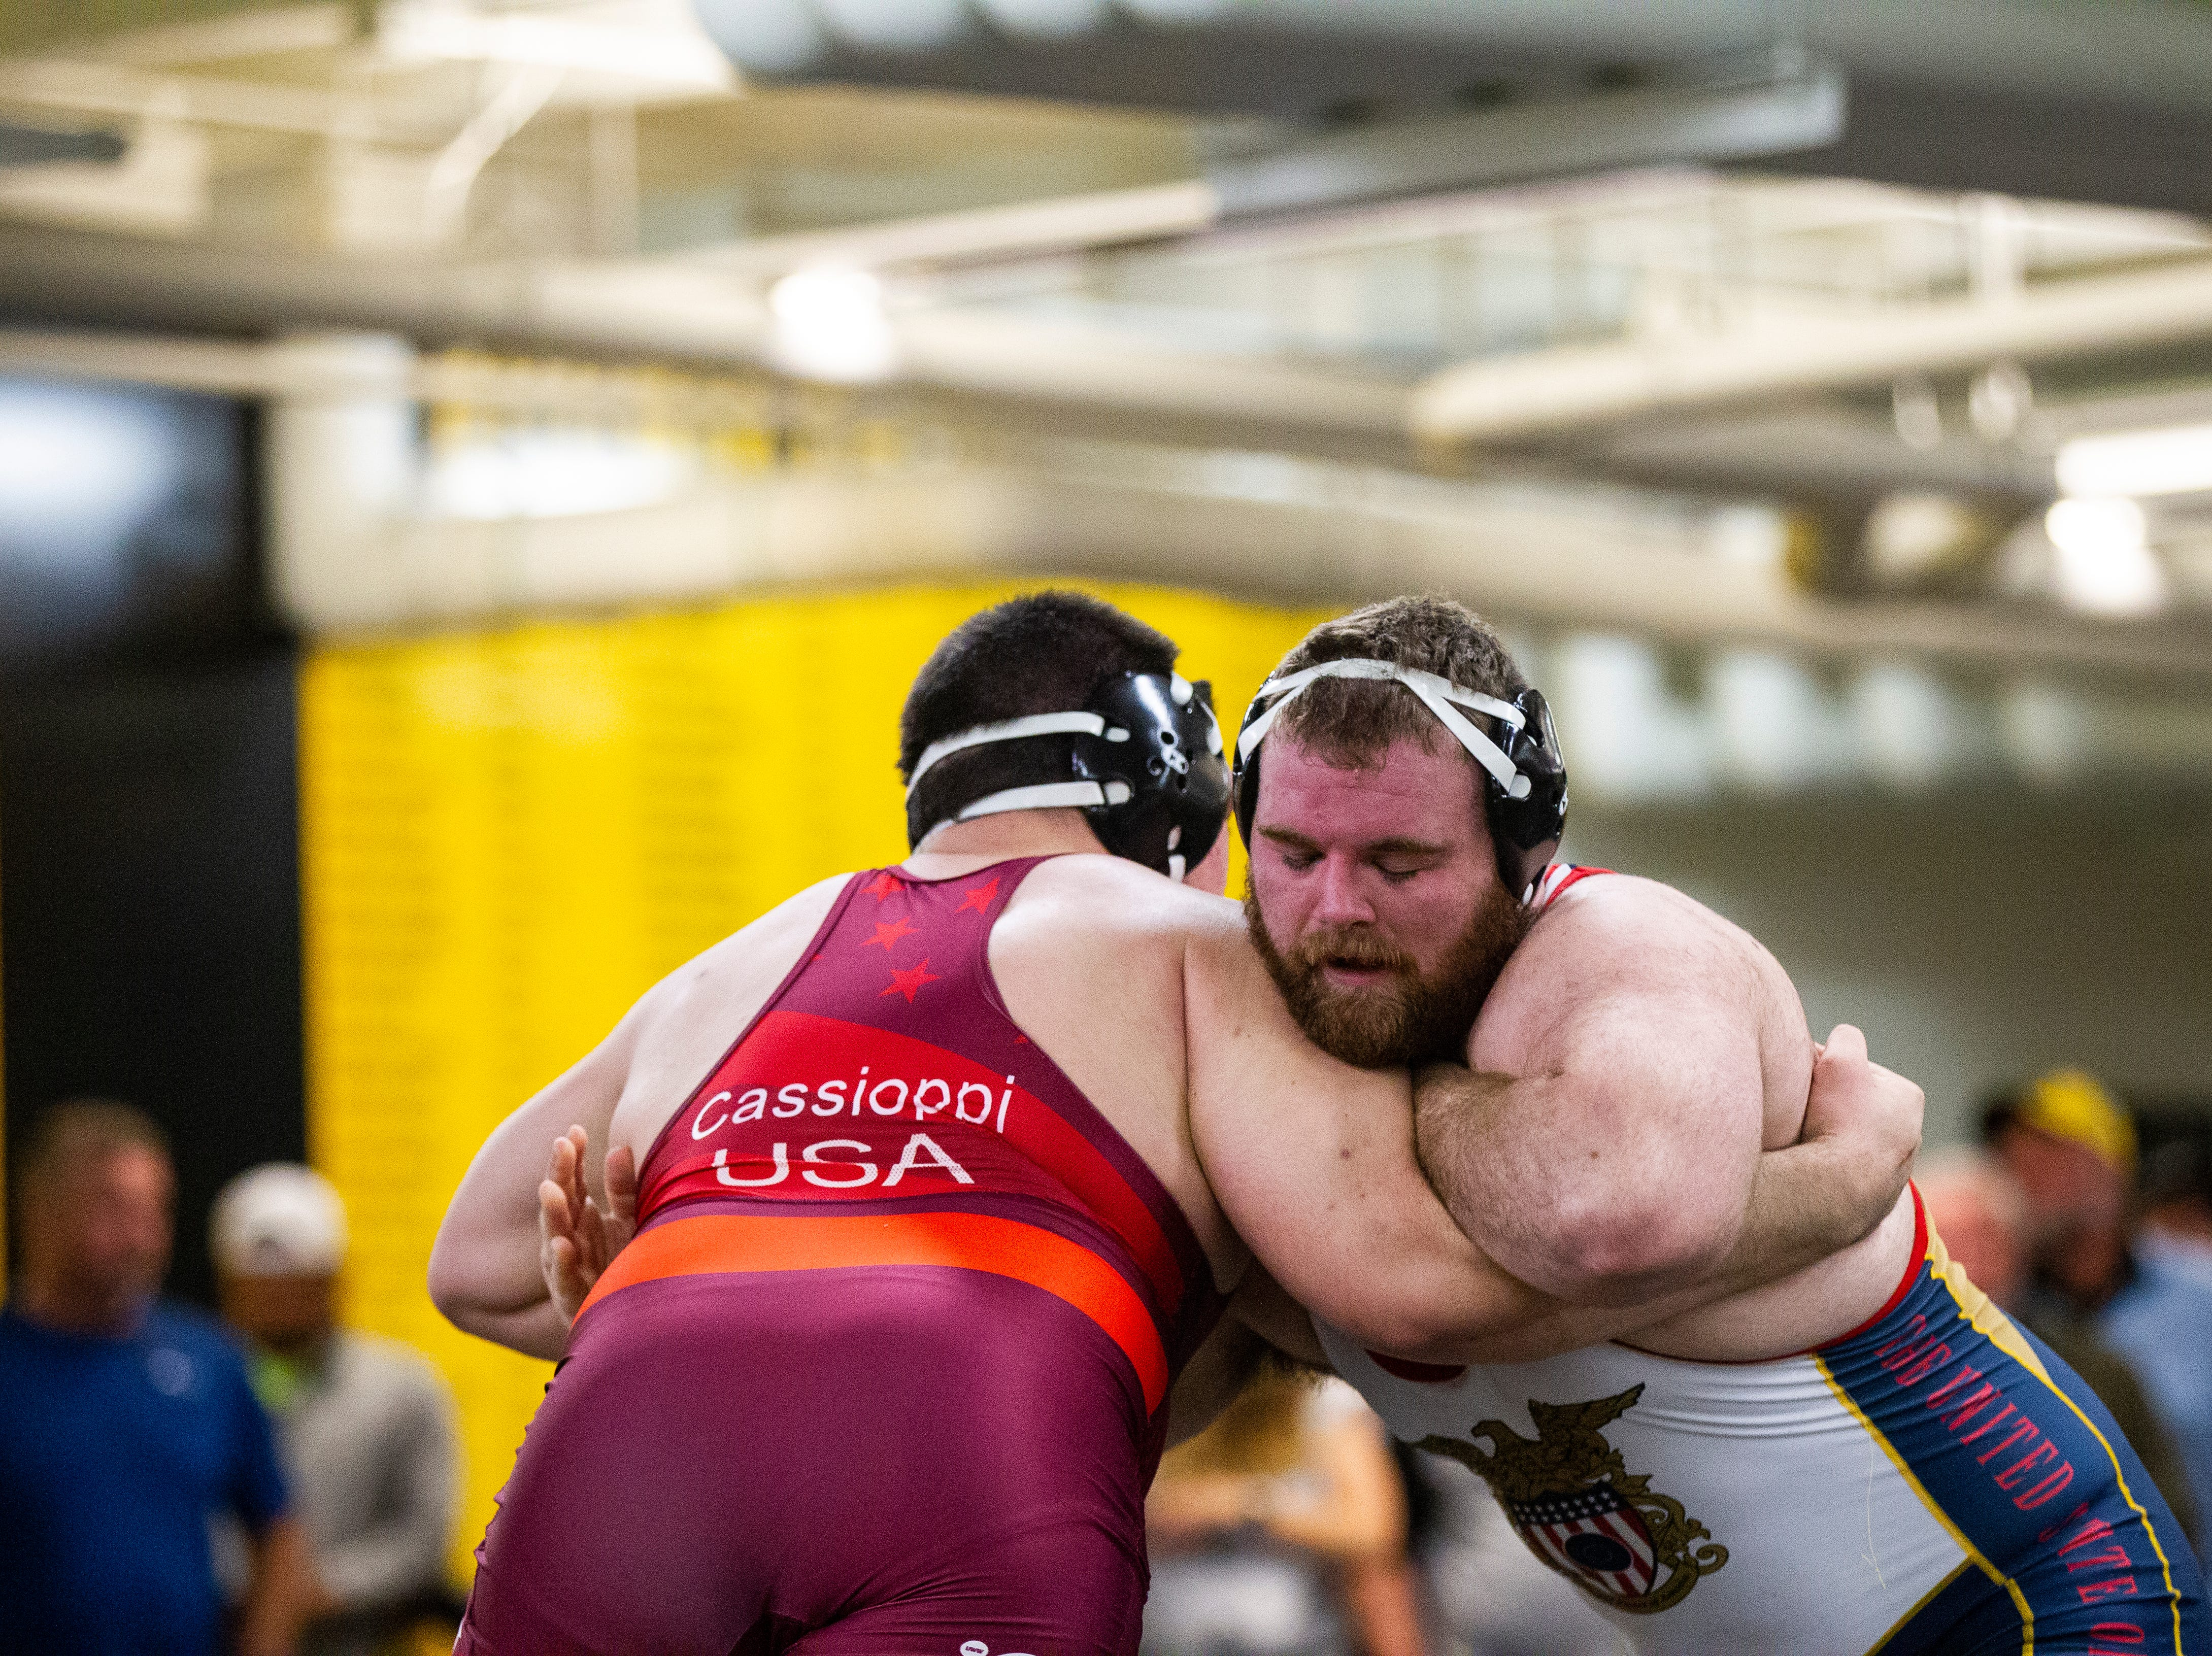 Iowa's Tony Cassioppi and Aaron Costello (right) wrestle at 285 during the wrestle-offs on Thursday, Nov. 1, 2018, inside the Dan Gable Wrestling Complex at Carver-Hawkeye Arena in Iowa City.